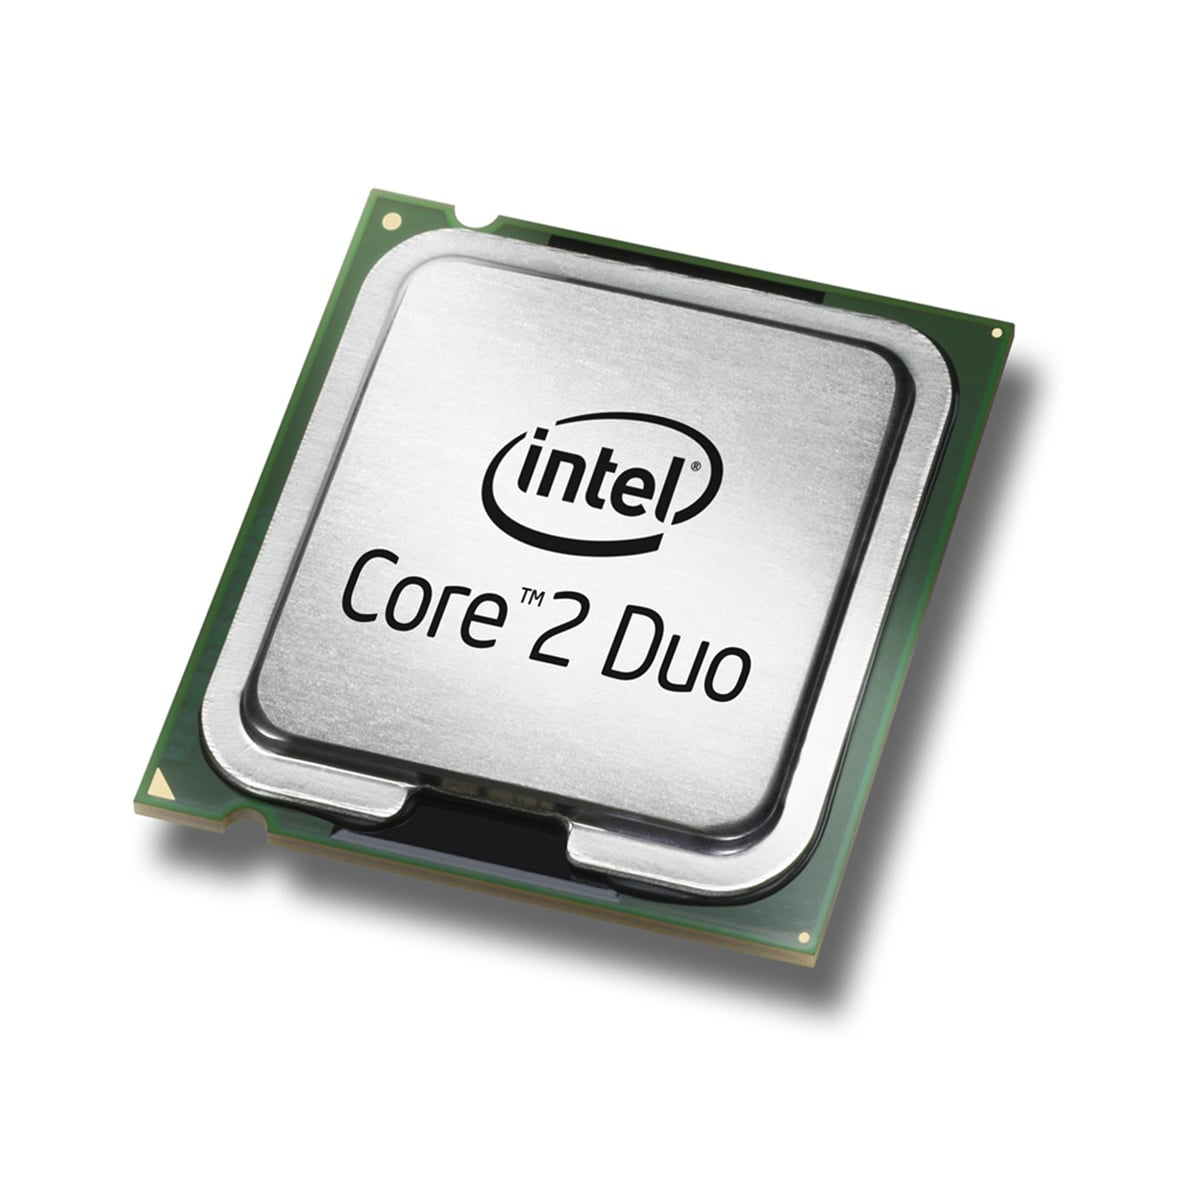 Processador Intel Core 2 Duo E7400 2,80Ghz 3M Cache 1066MHz - Socket 775 - Seminovo